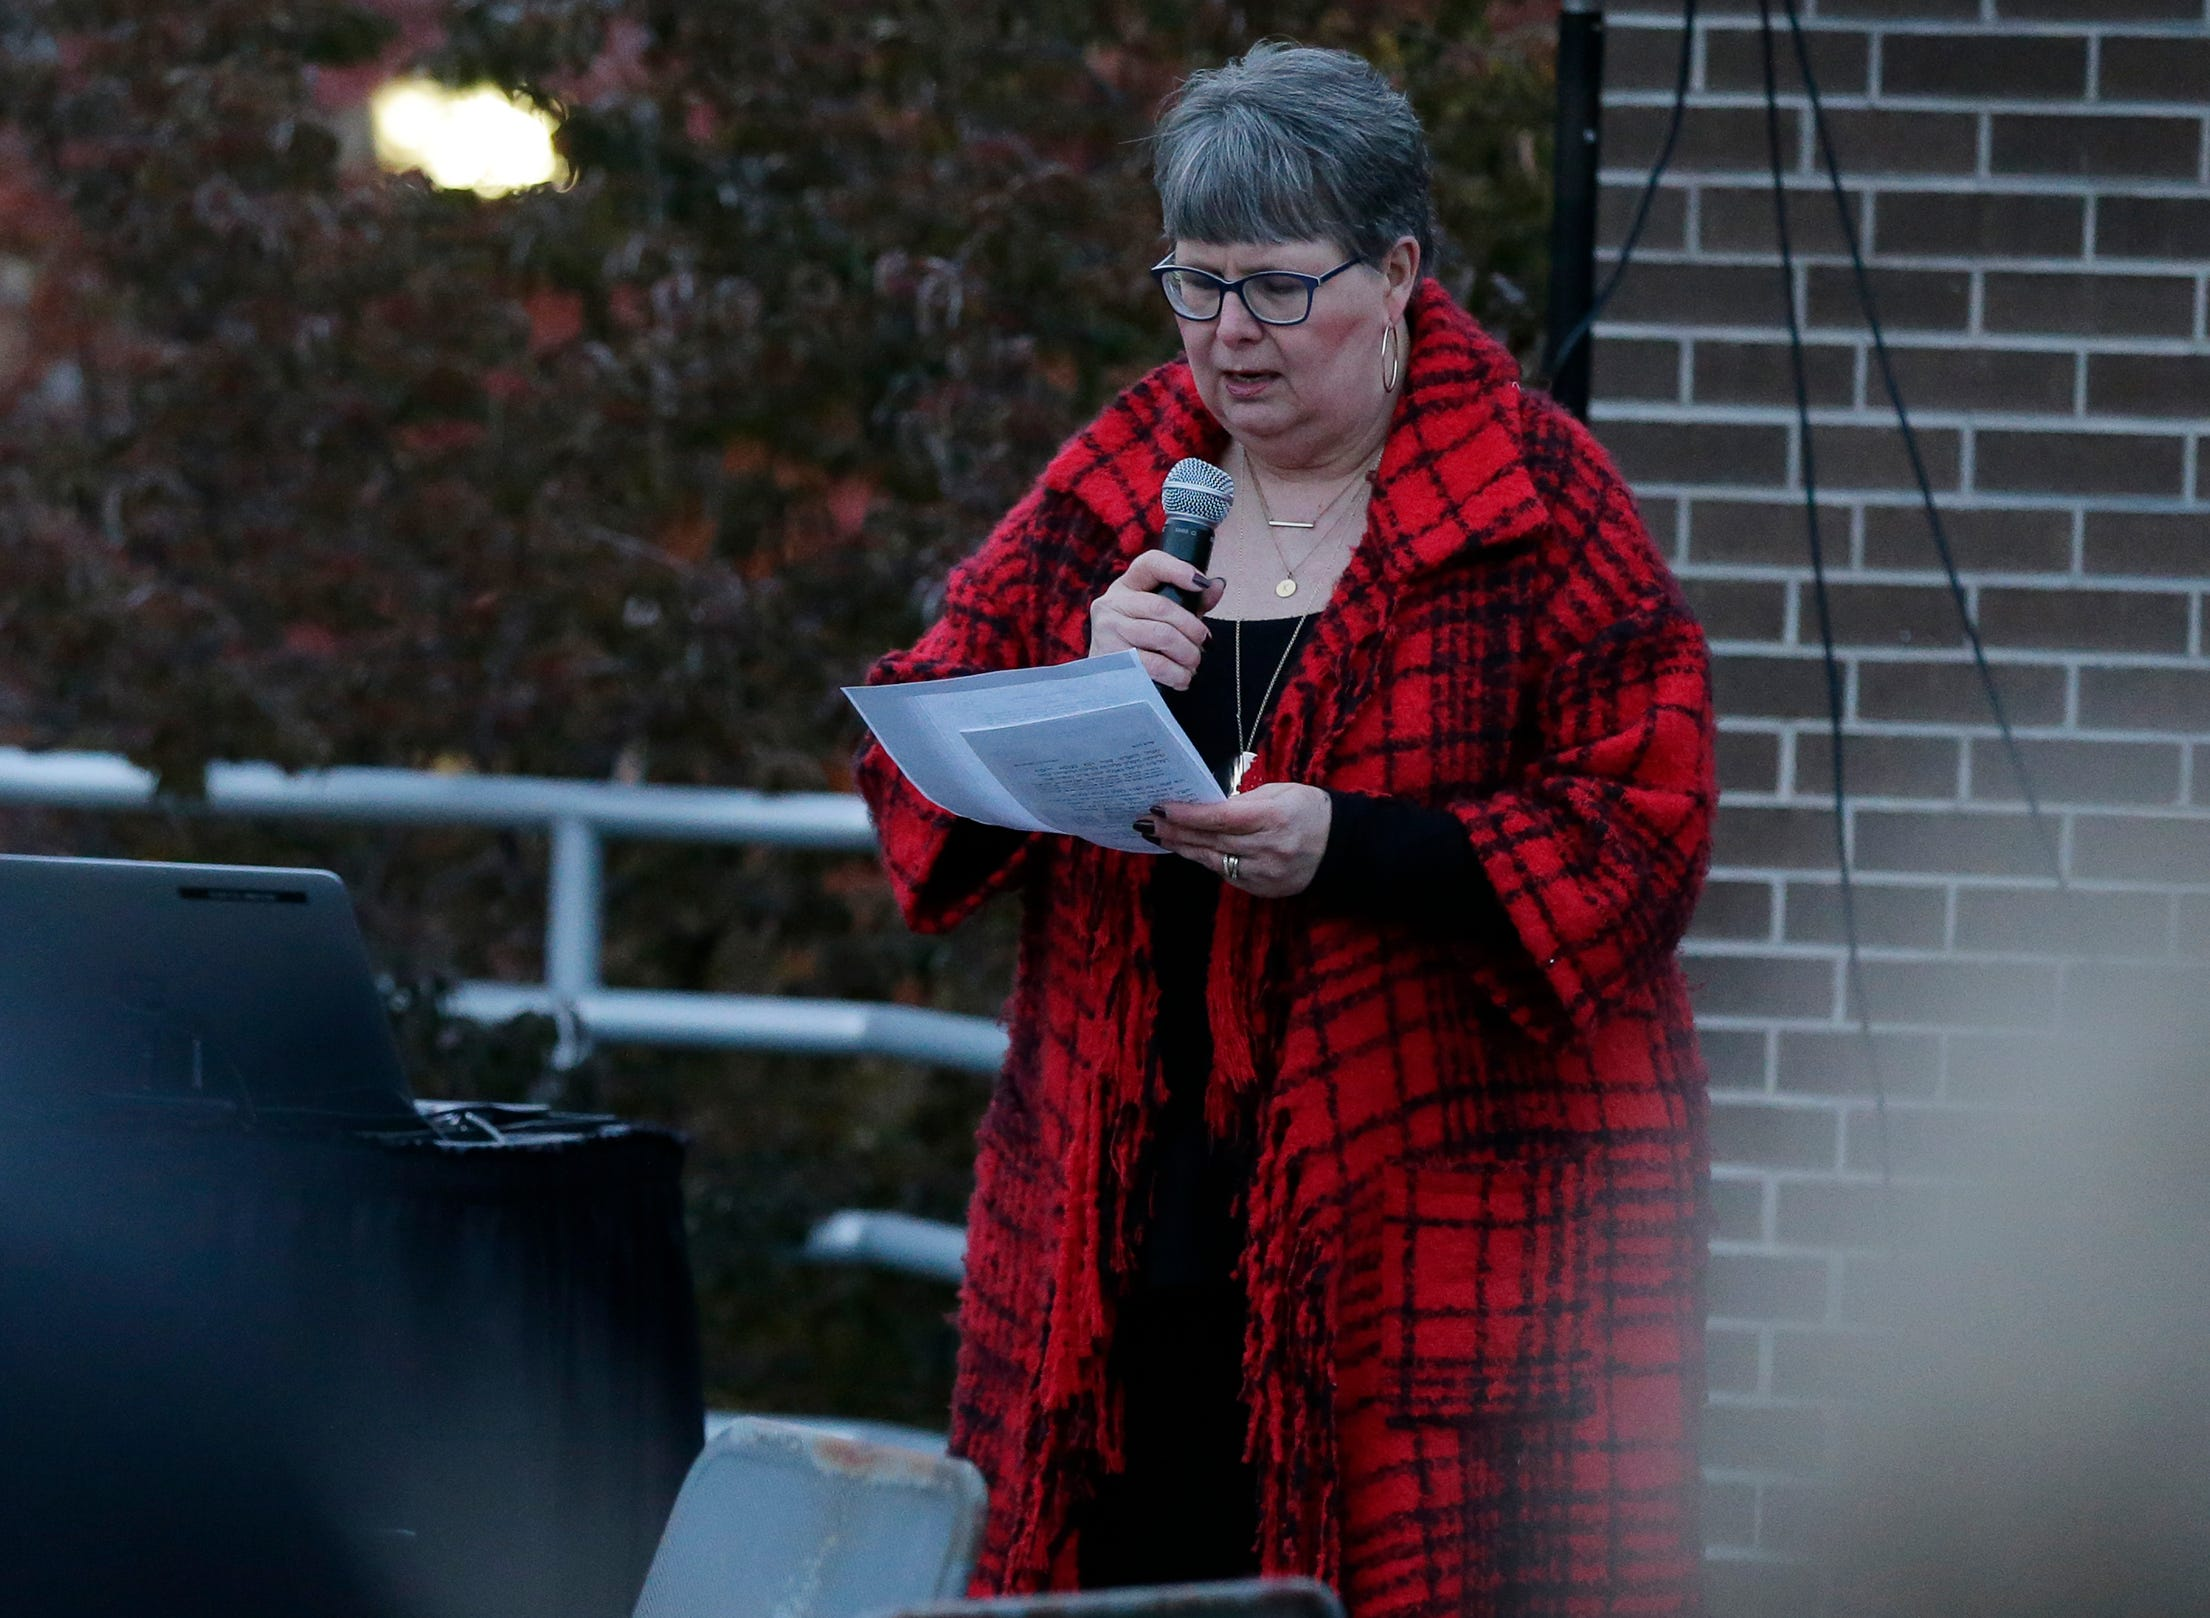 Dr. Kathleen Corley Schuhart, Prof. New Testament and Christianity gives the readings.  A candlelight vigil was held on the upper deck of UW-Oshkosh's Albee Hall Thursday, November 1, 2018, to come together and remember those killed at the Tree of Life Congregation in the Squirrel Hill neighborhood of Pittsburgh, Pa. Eleven people were killed and six injured in the attack.